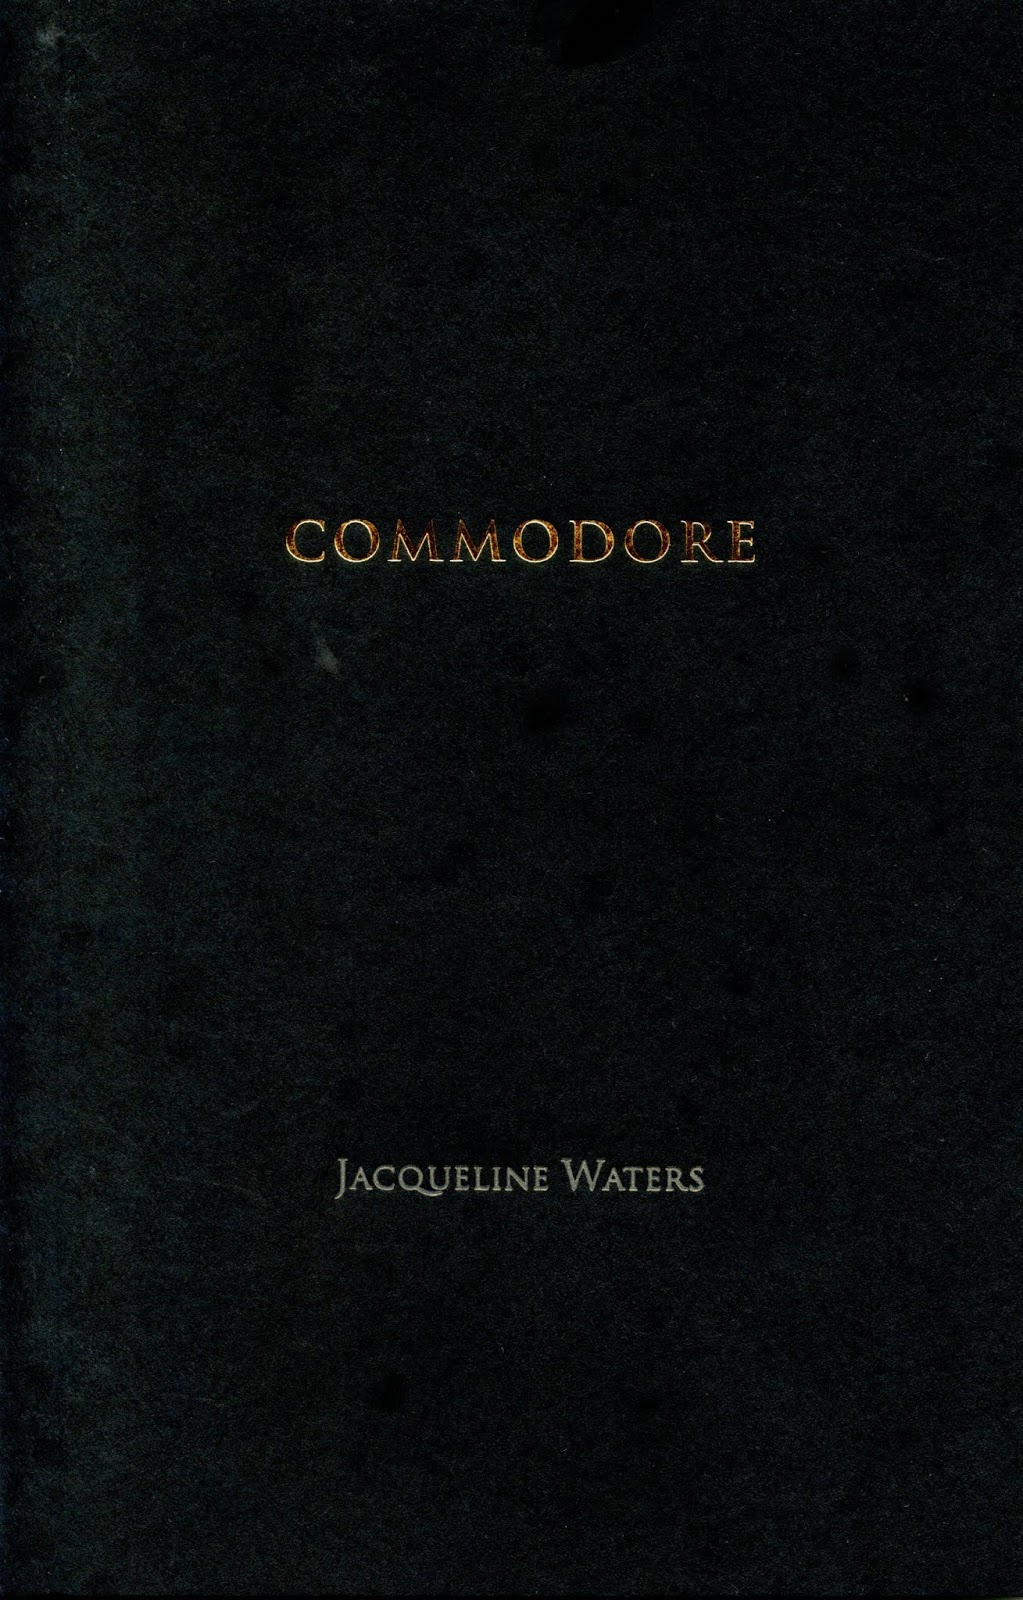 Rob mclennans blog jacqueline waters commodore the poems in commodore move quickly through a contemporary landscape of western ideas and ideals broken down mangled and set aside in favour of something fandeluxe Gallery